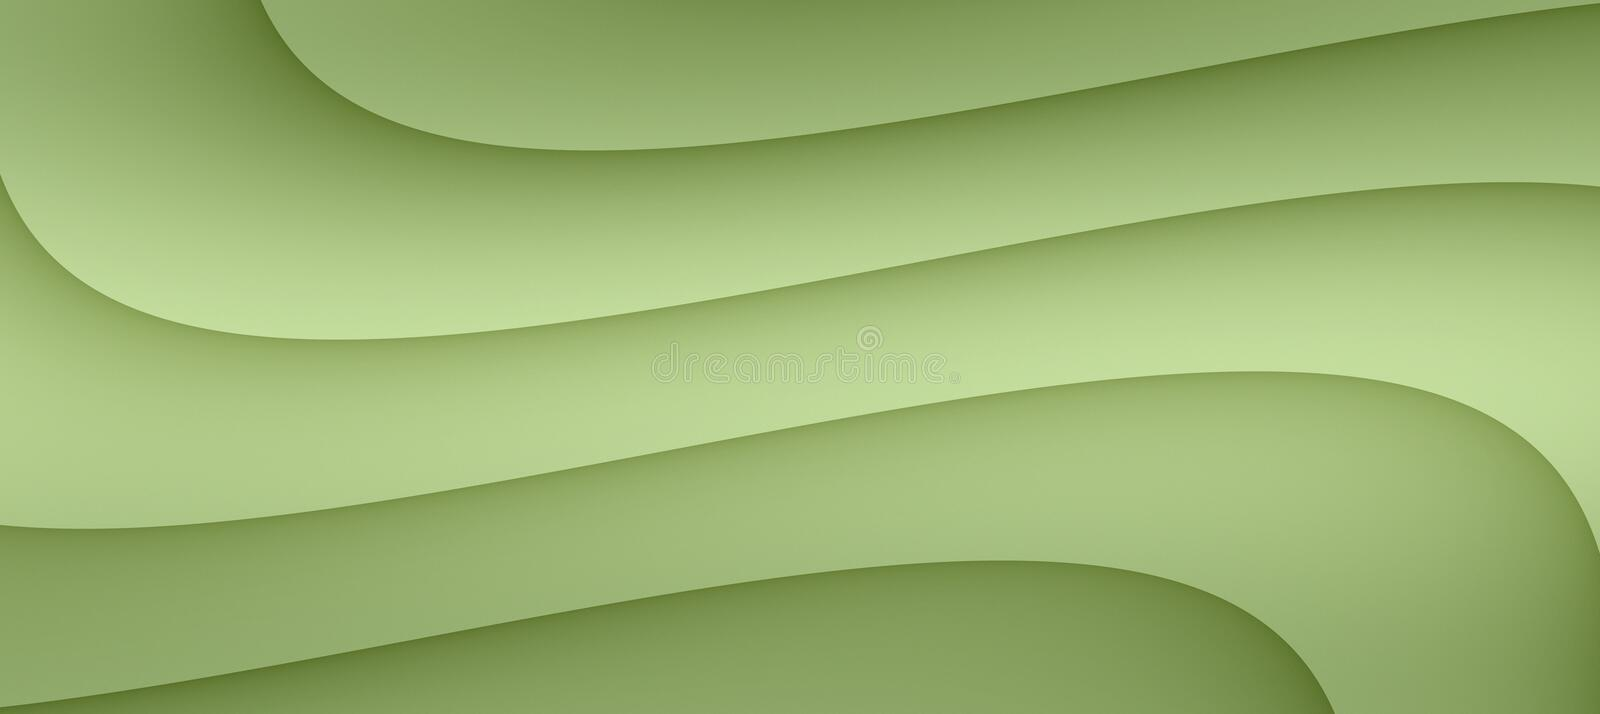 High resolution smooth flowing curves abstract background illustration in shades of muted pale moss green. High resolution computer generated abstract background stock illustration